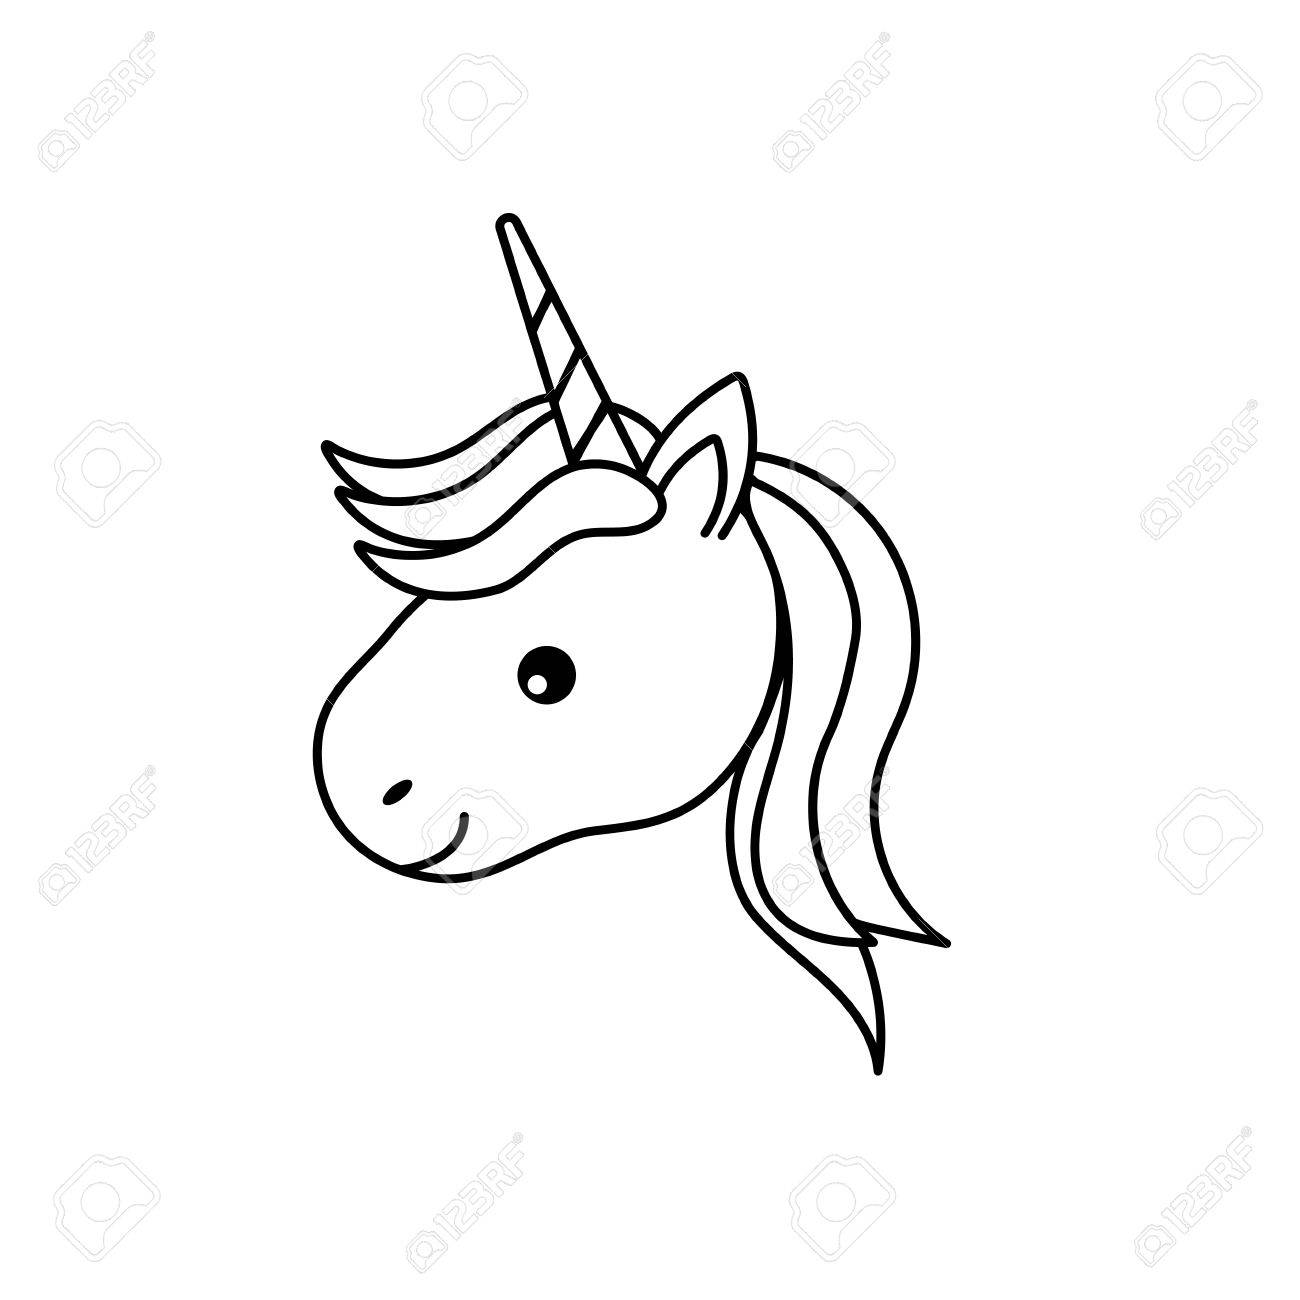 Unicorn Horn Drawing At Getdrawings